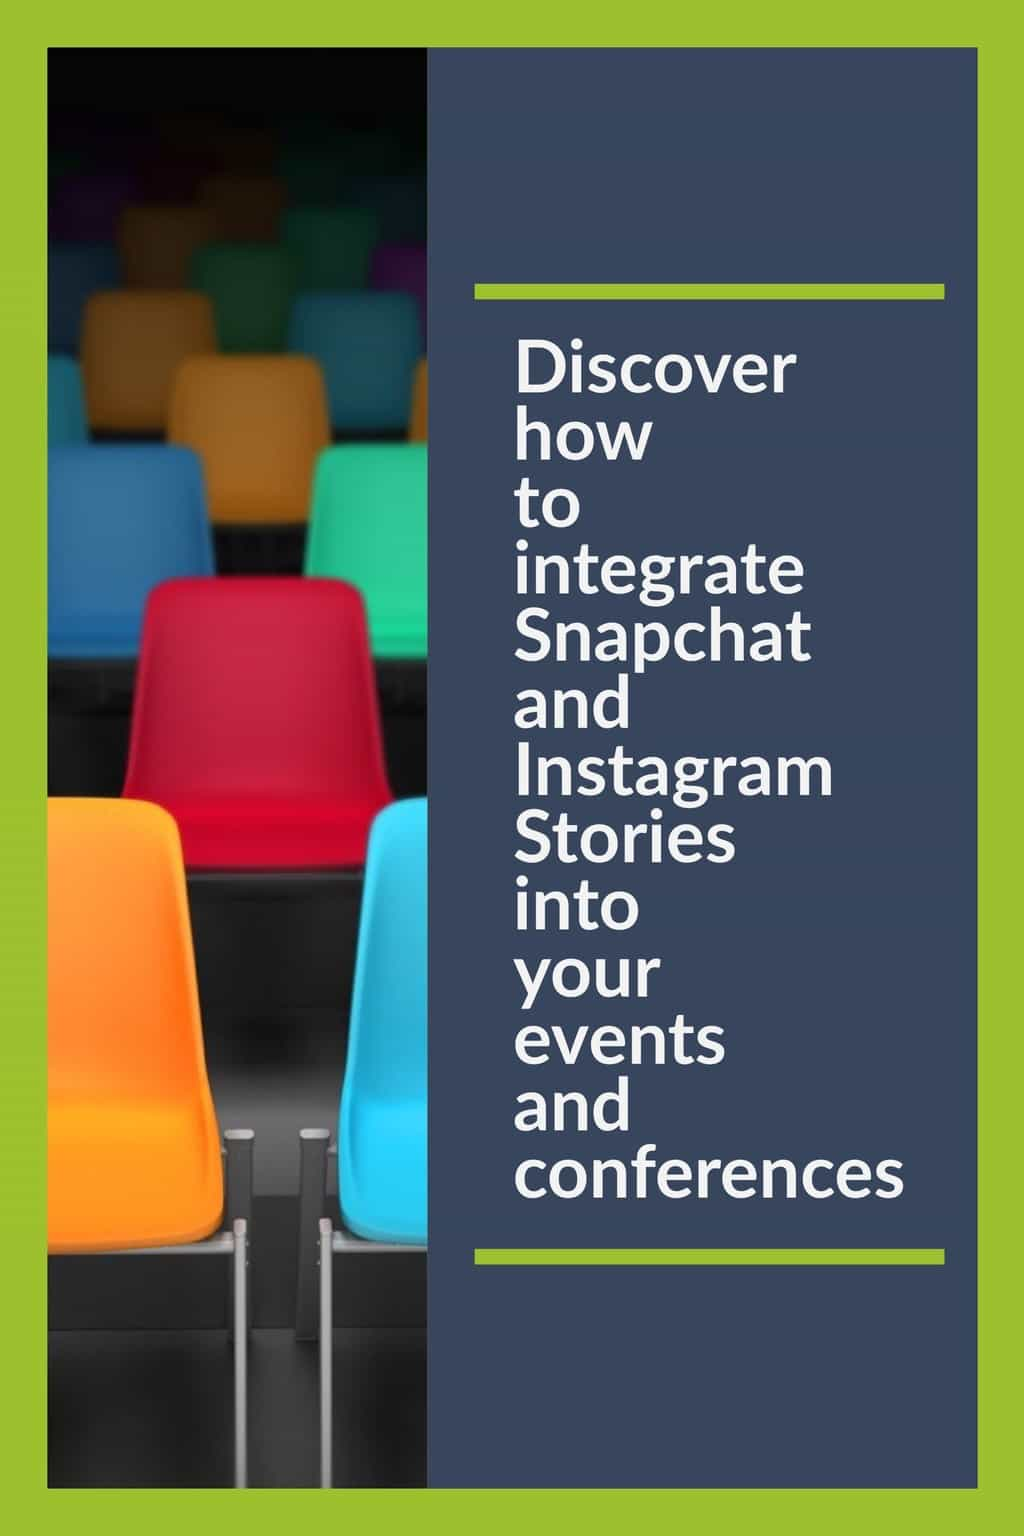 Using Snapchat and Instagram stories for conferences and events